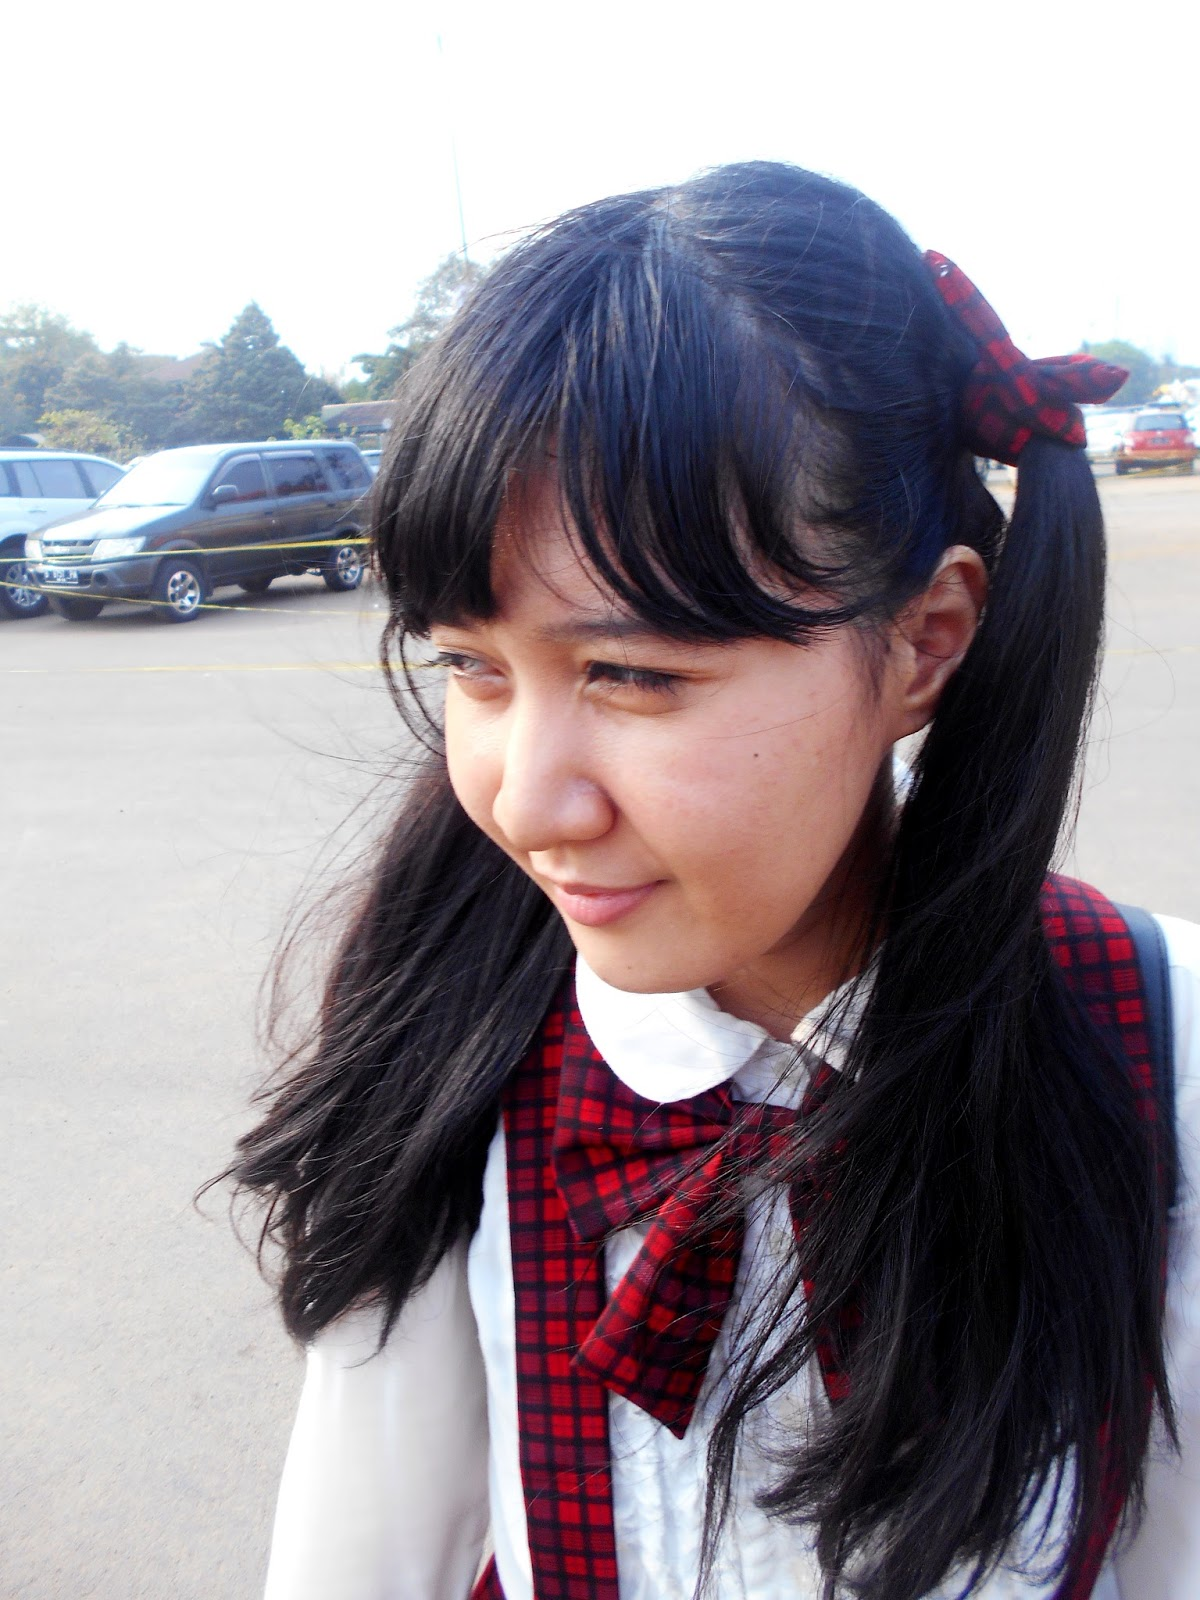 Anime School Girl Bow Tie DIY - AFAID 2015 candid